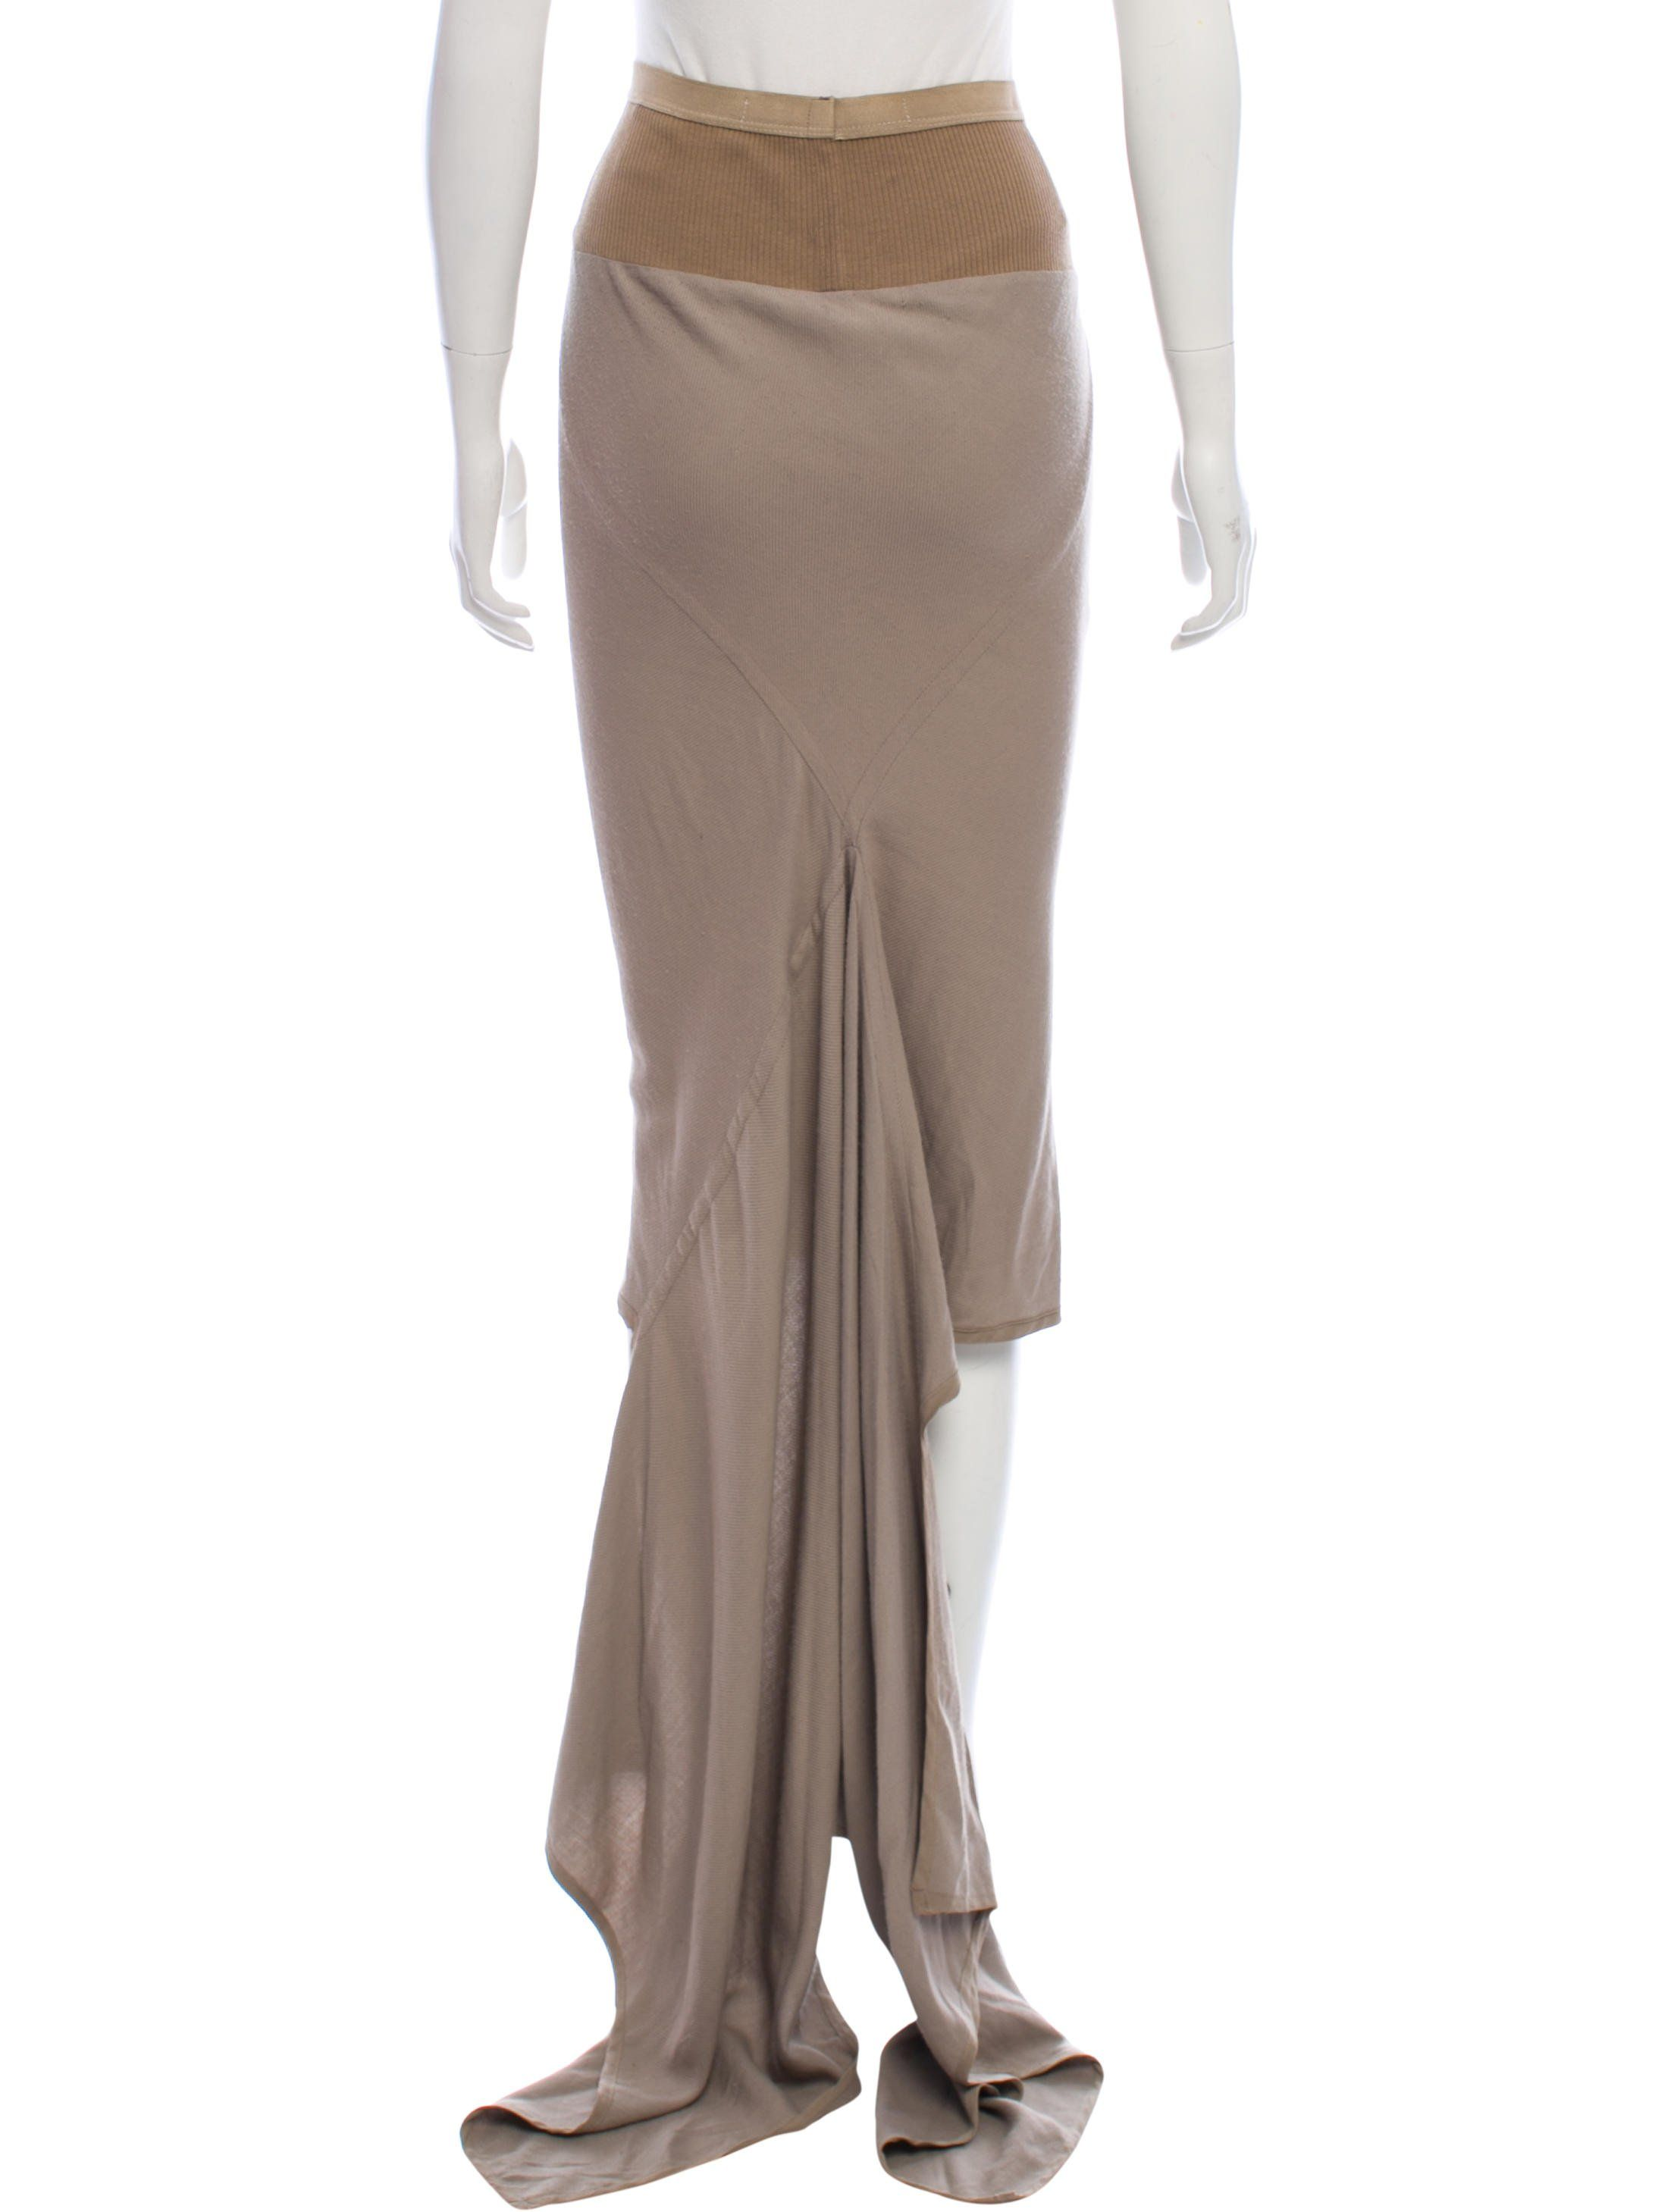 e8486aa0cd Khaki Rick Owens maxi skirt with dual slit pockets at sides and high-low  hem.